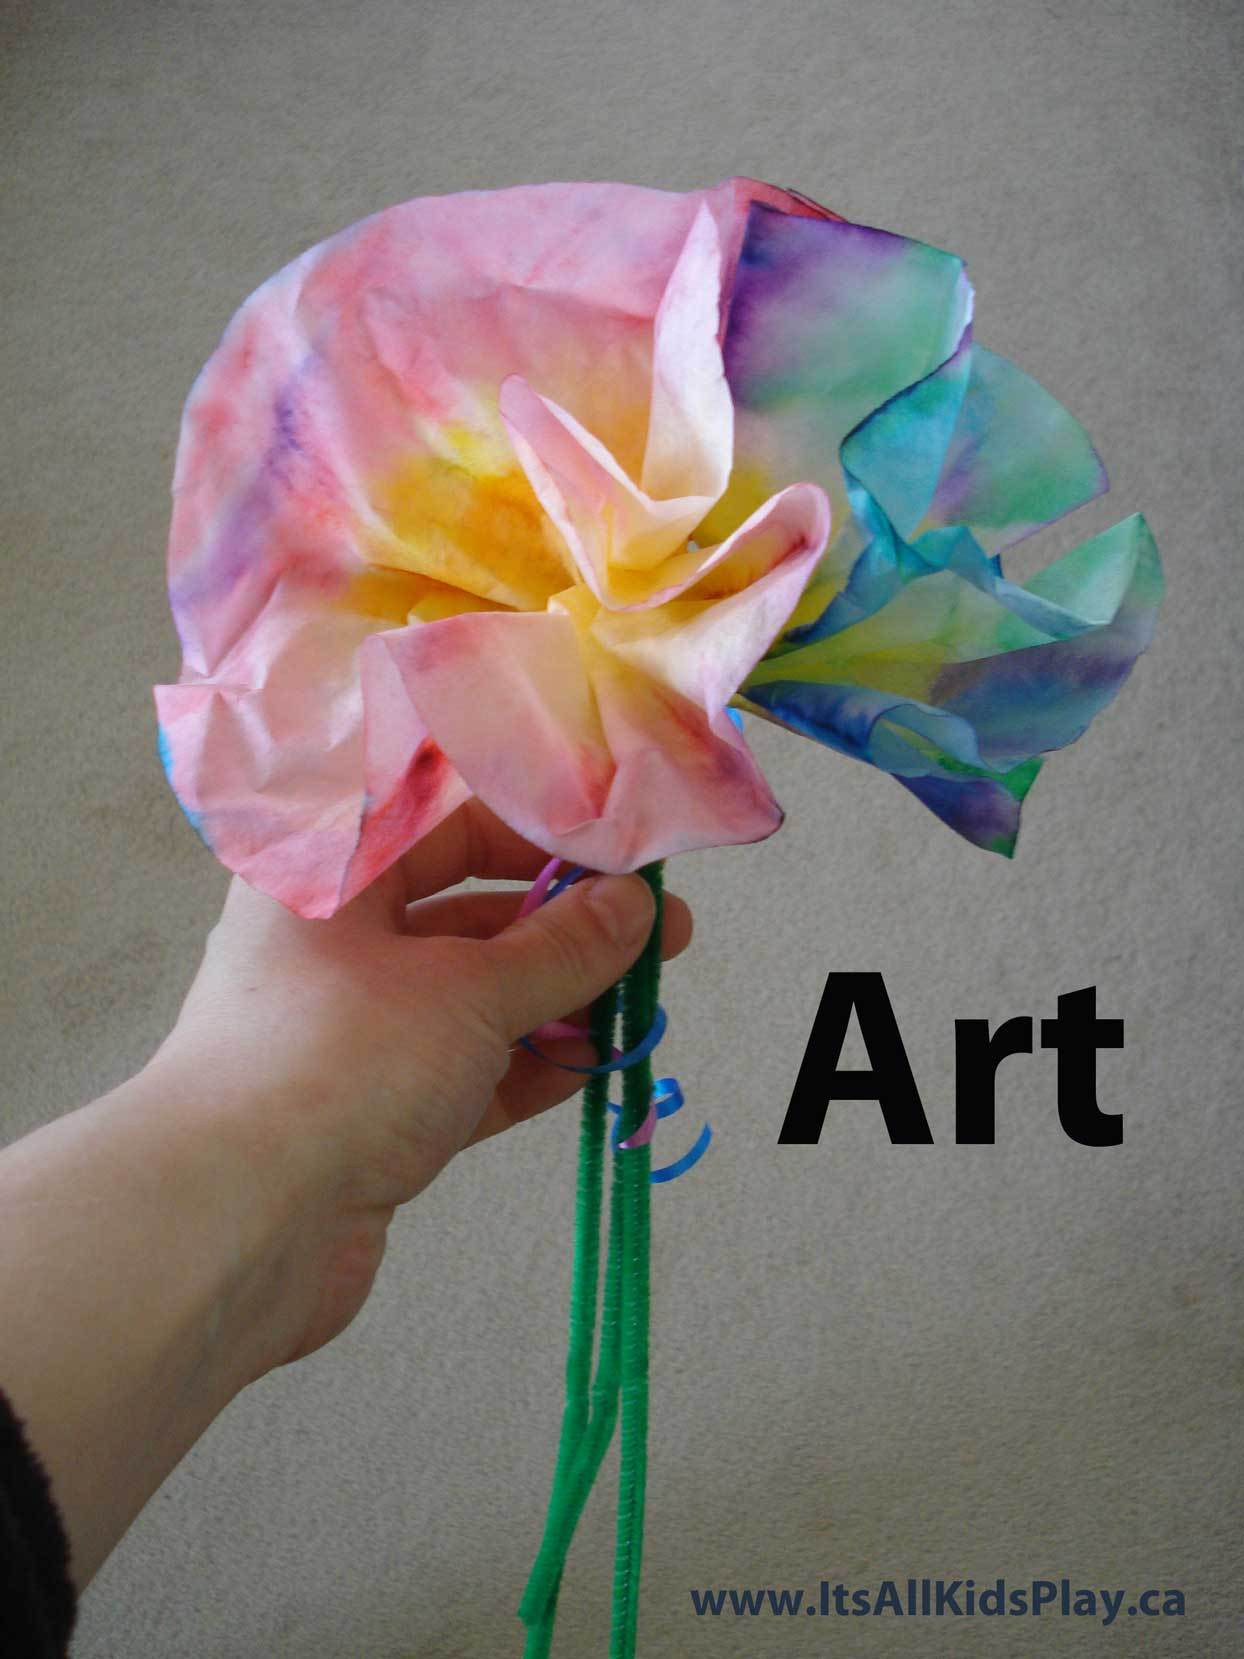 Best ideas about Fun Art For Kids . Save or Pin Art – It s All Kid s Play Now.